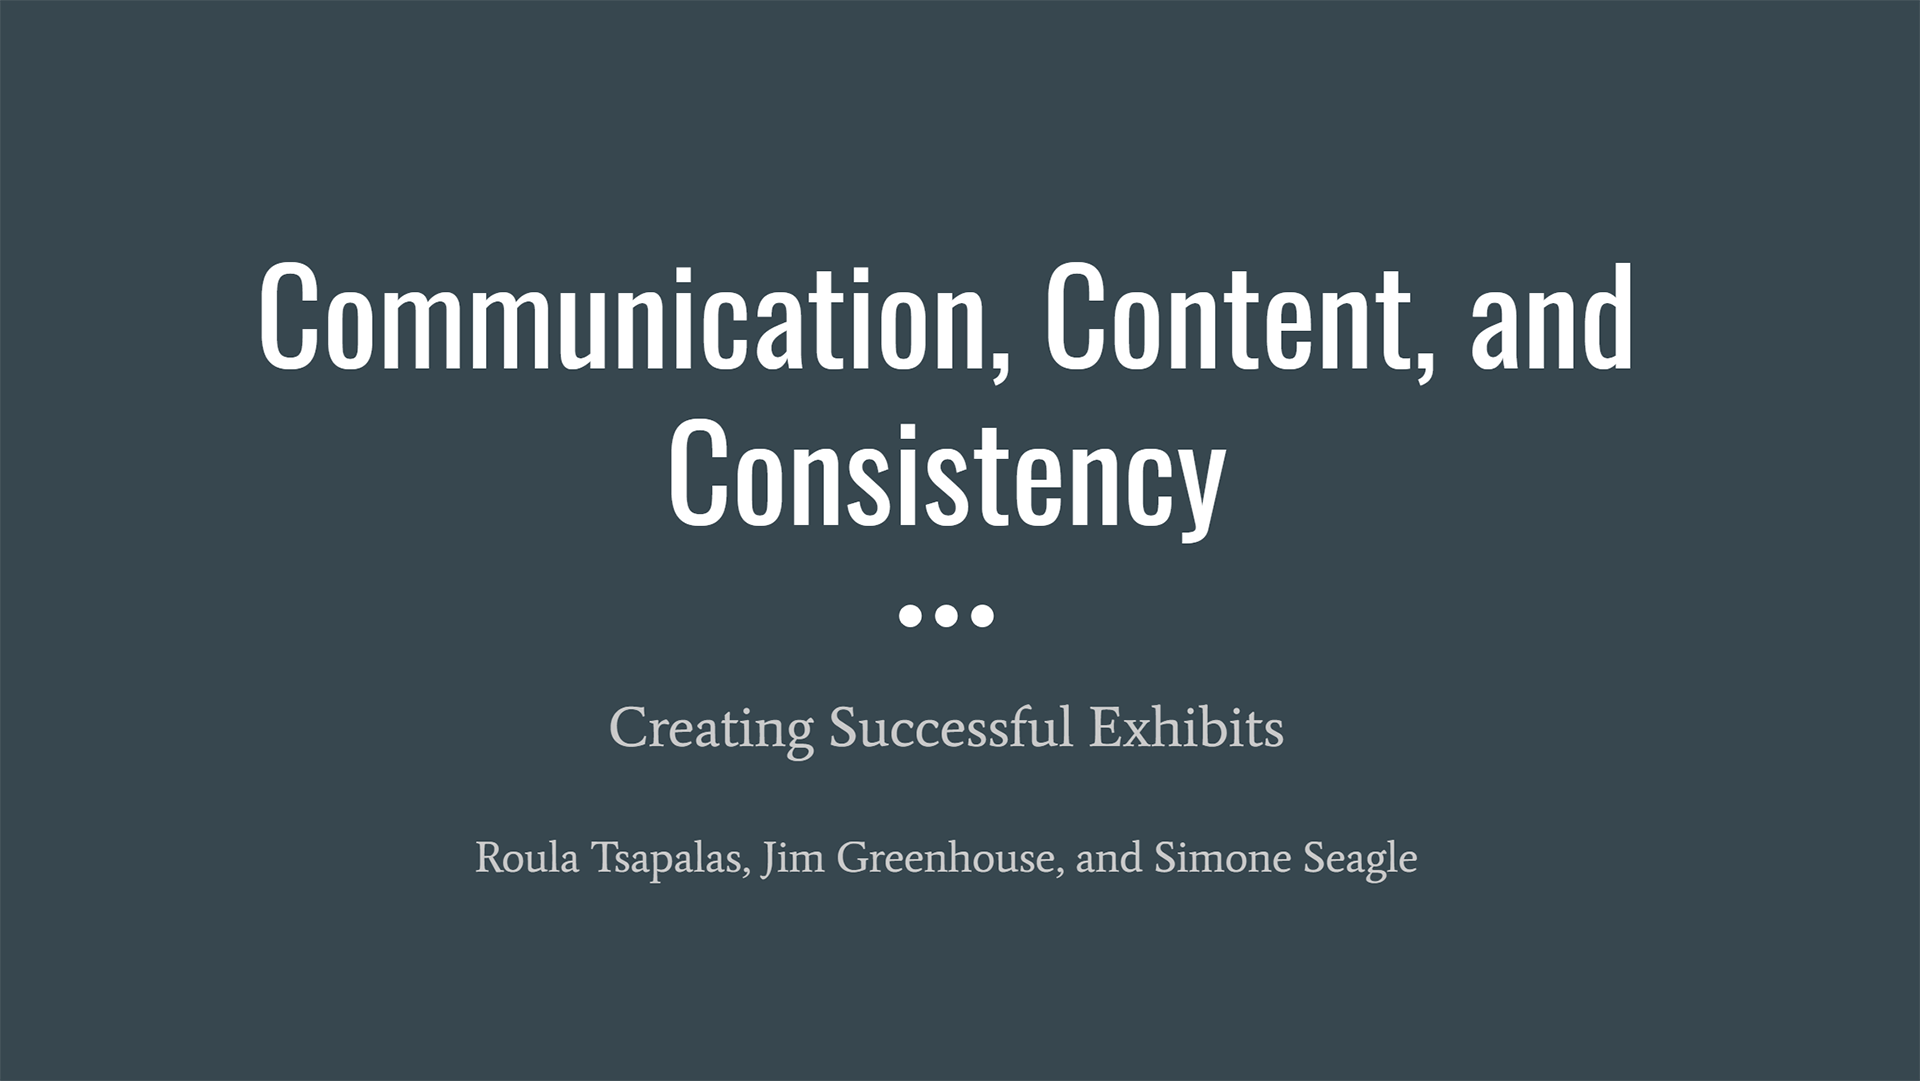 Communication, Content, and Consistency